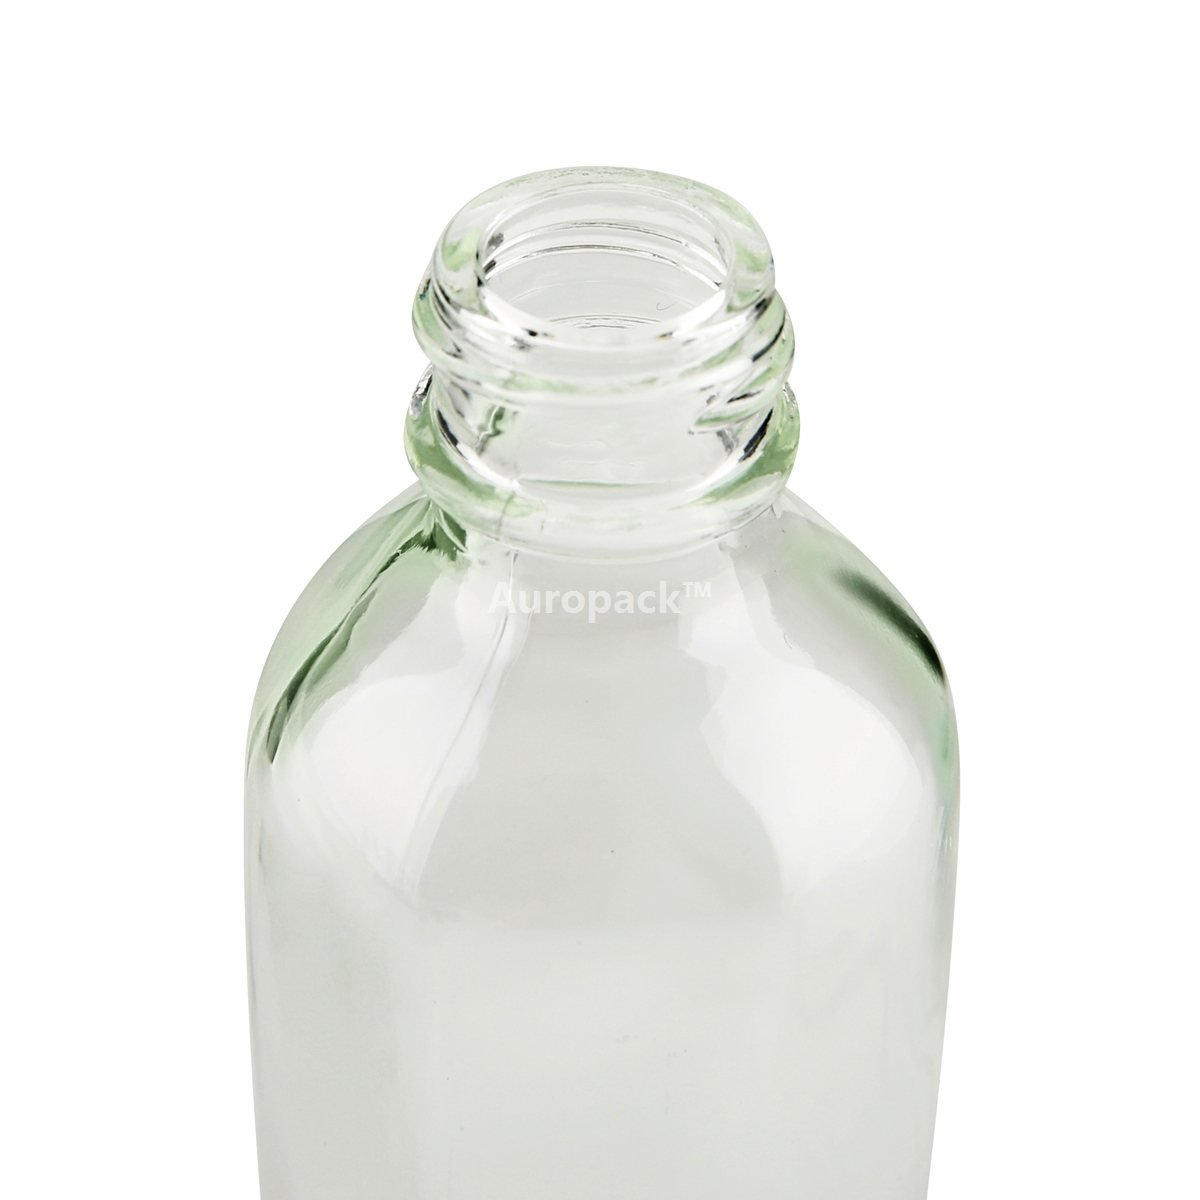 Pack of 12 Auropack 30ml 1oz Clear Boston Round Bottle with Cap